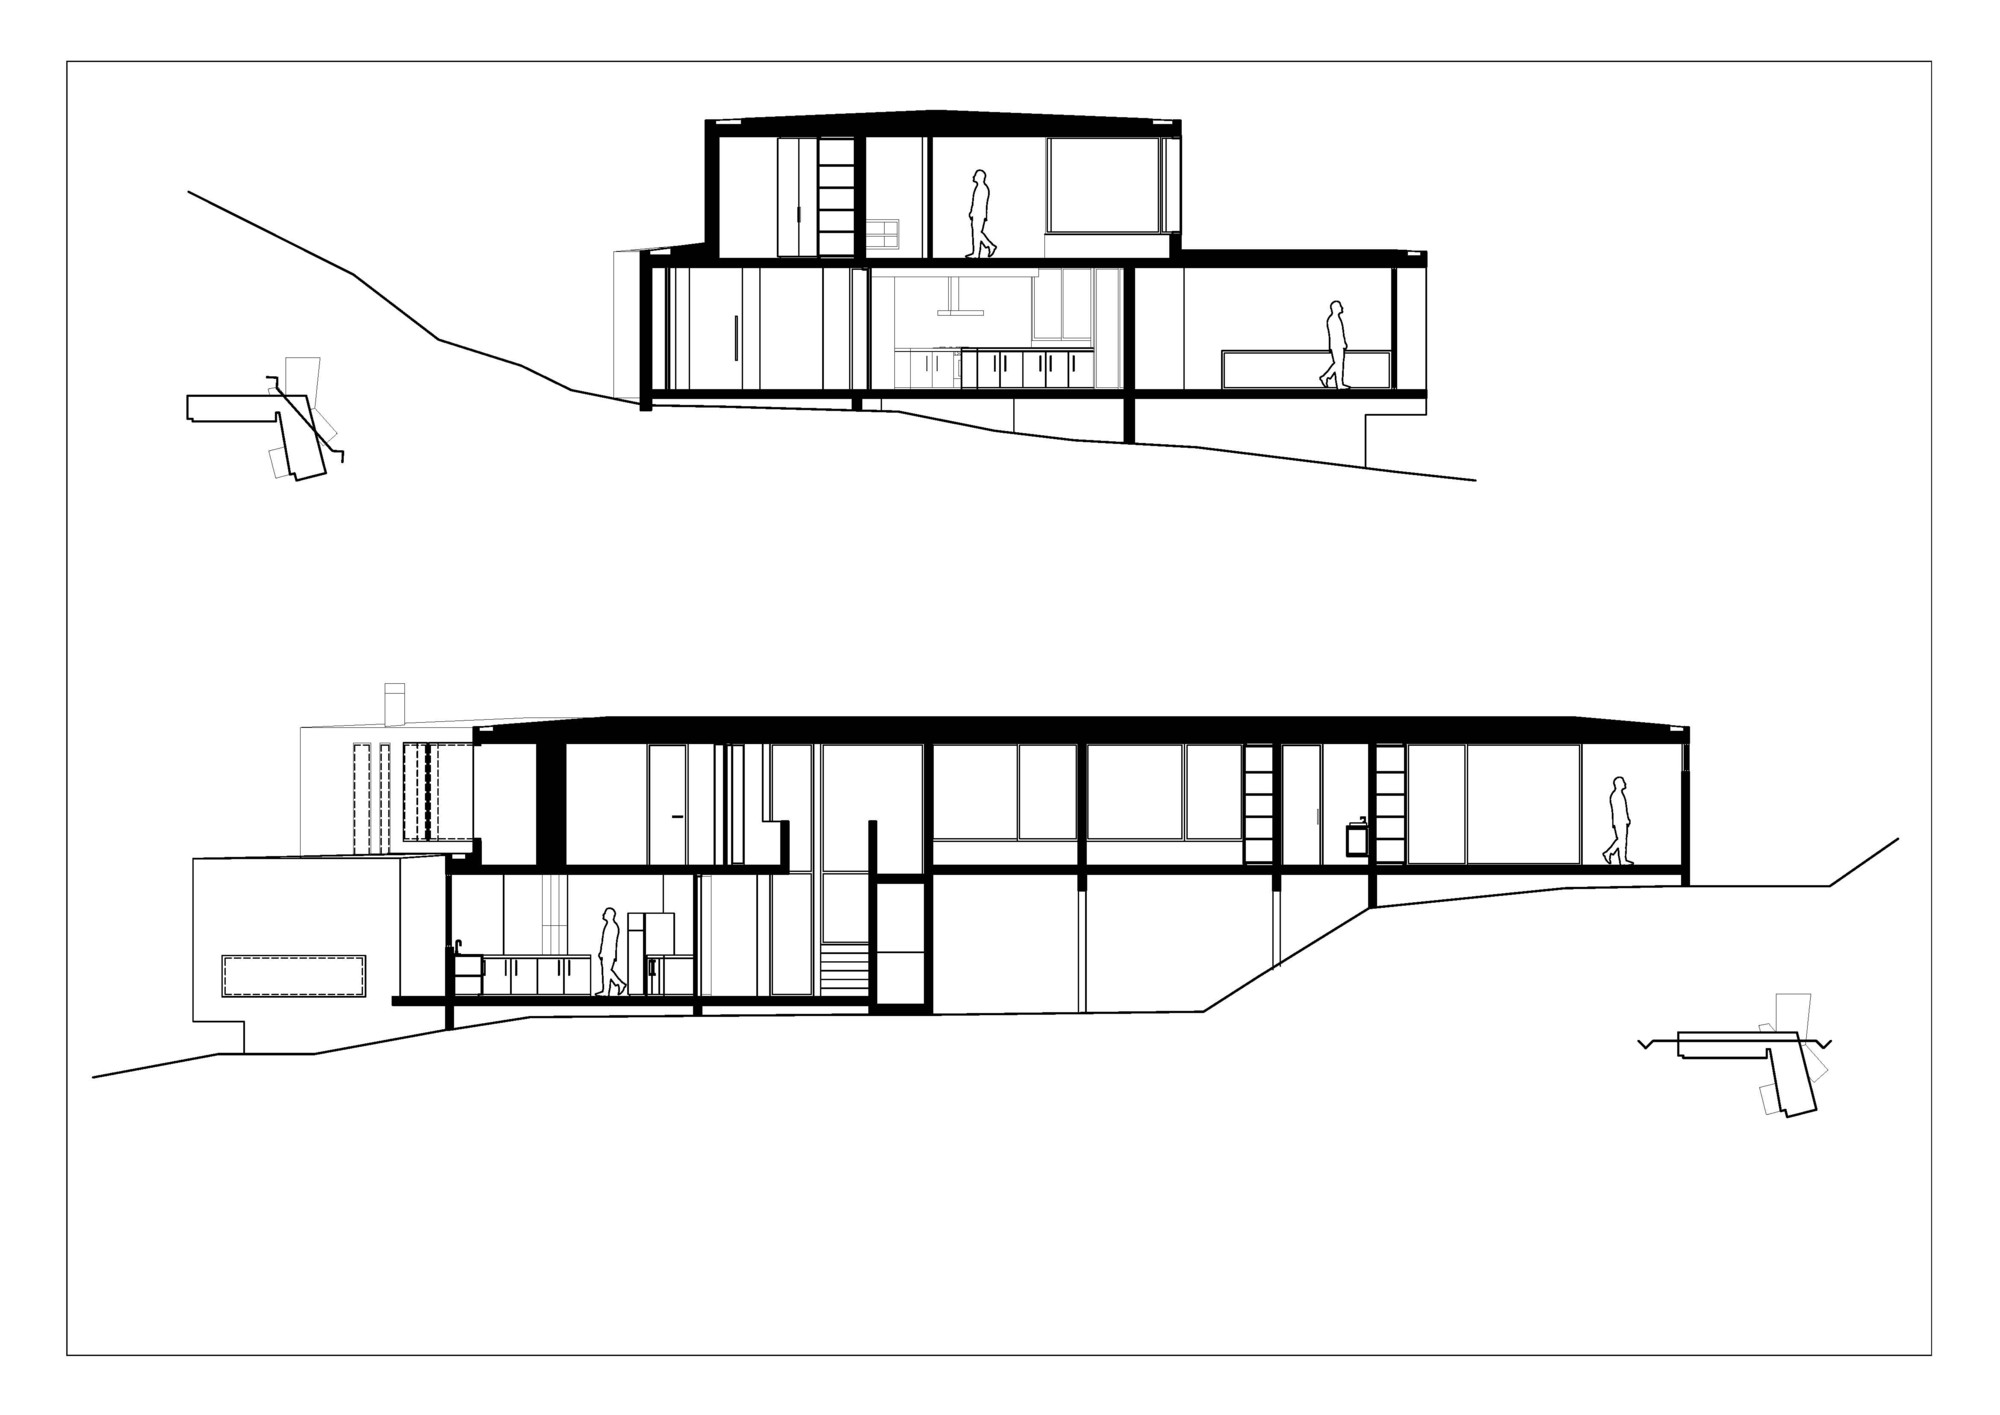 House Floor Plans Com Gallery Of Catch The Views House Land Arquitectos 18